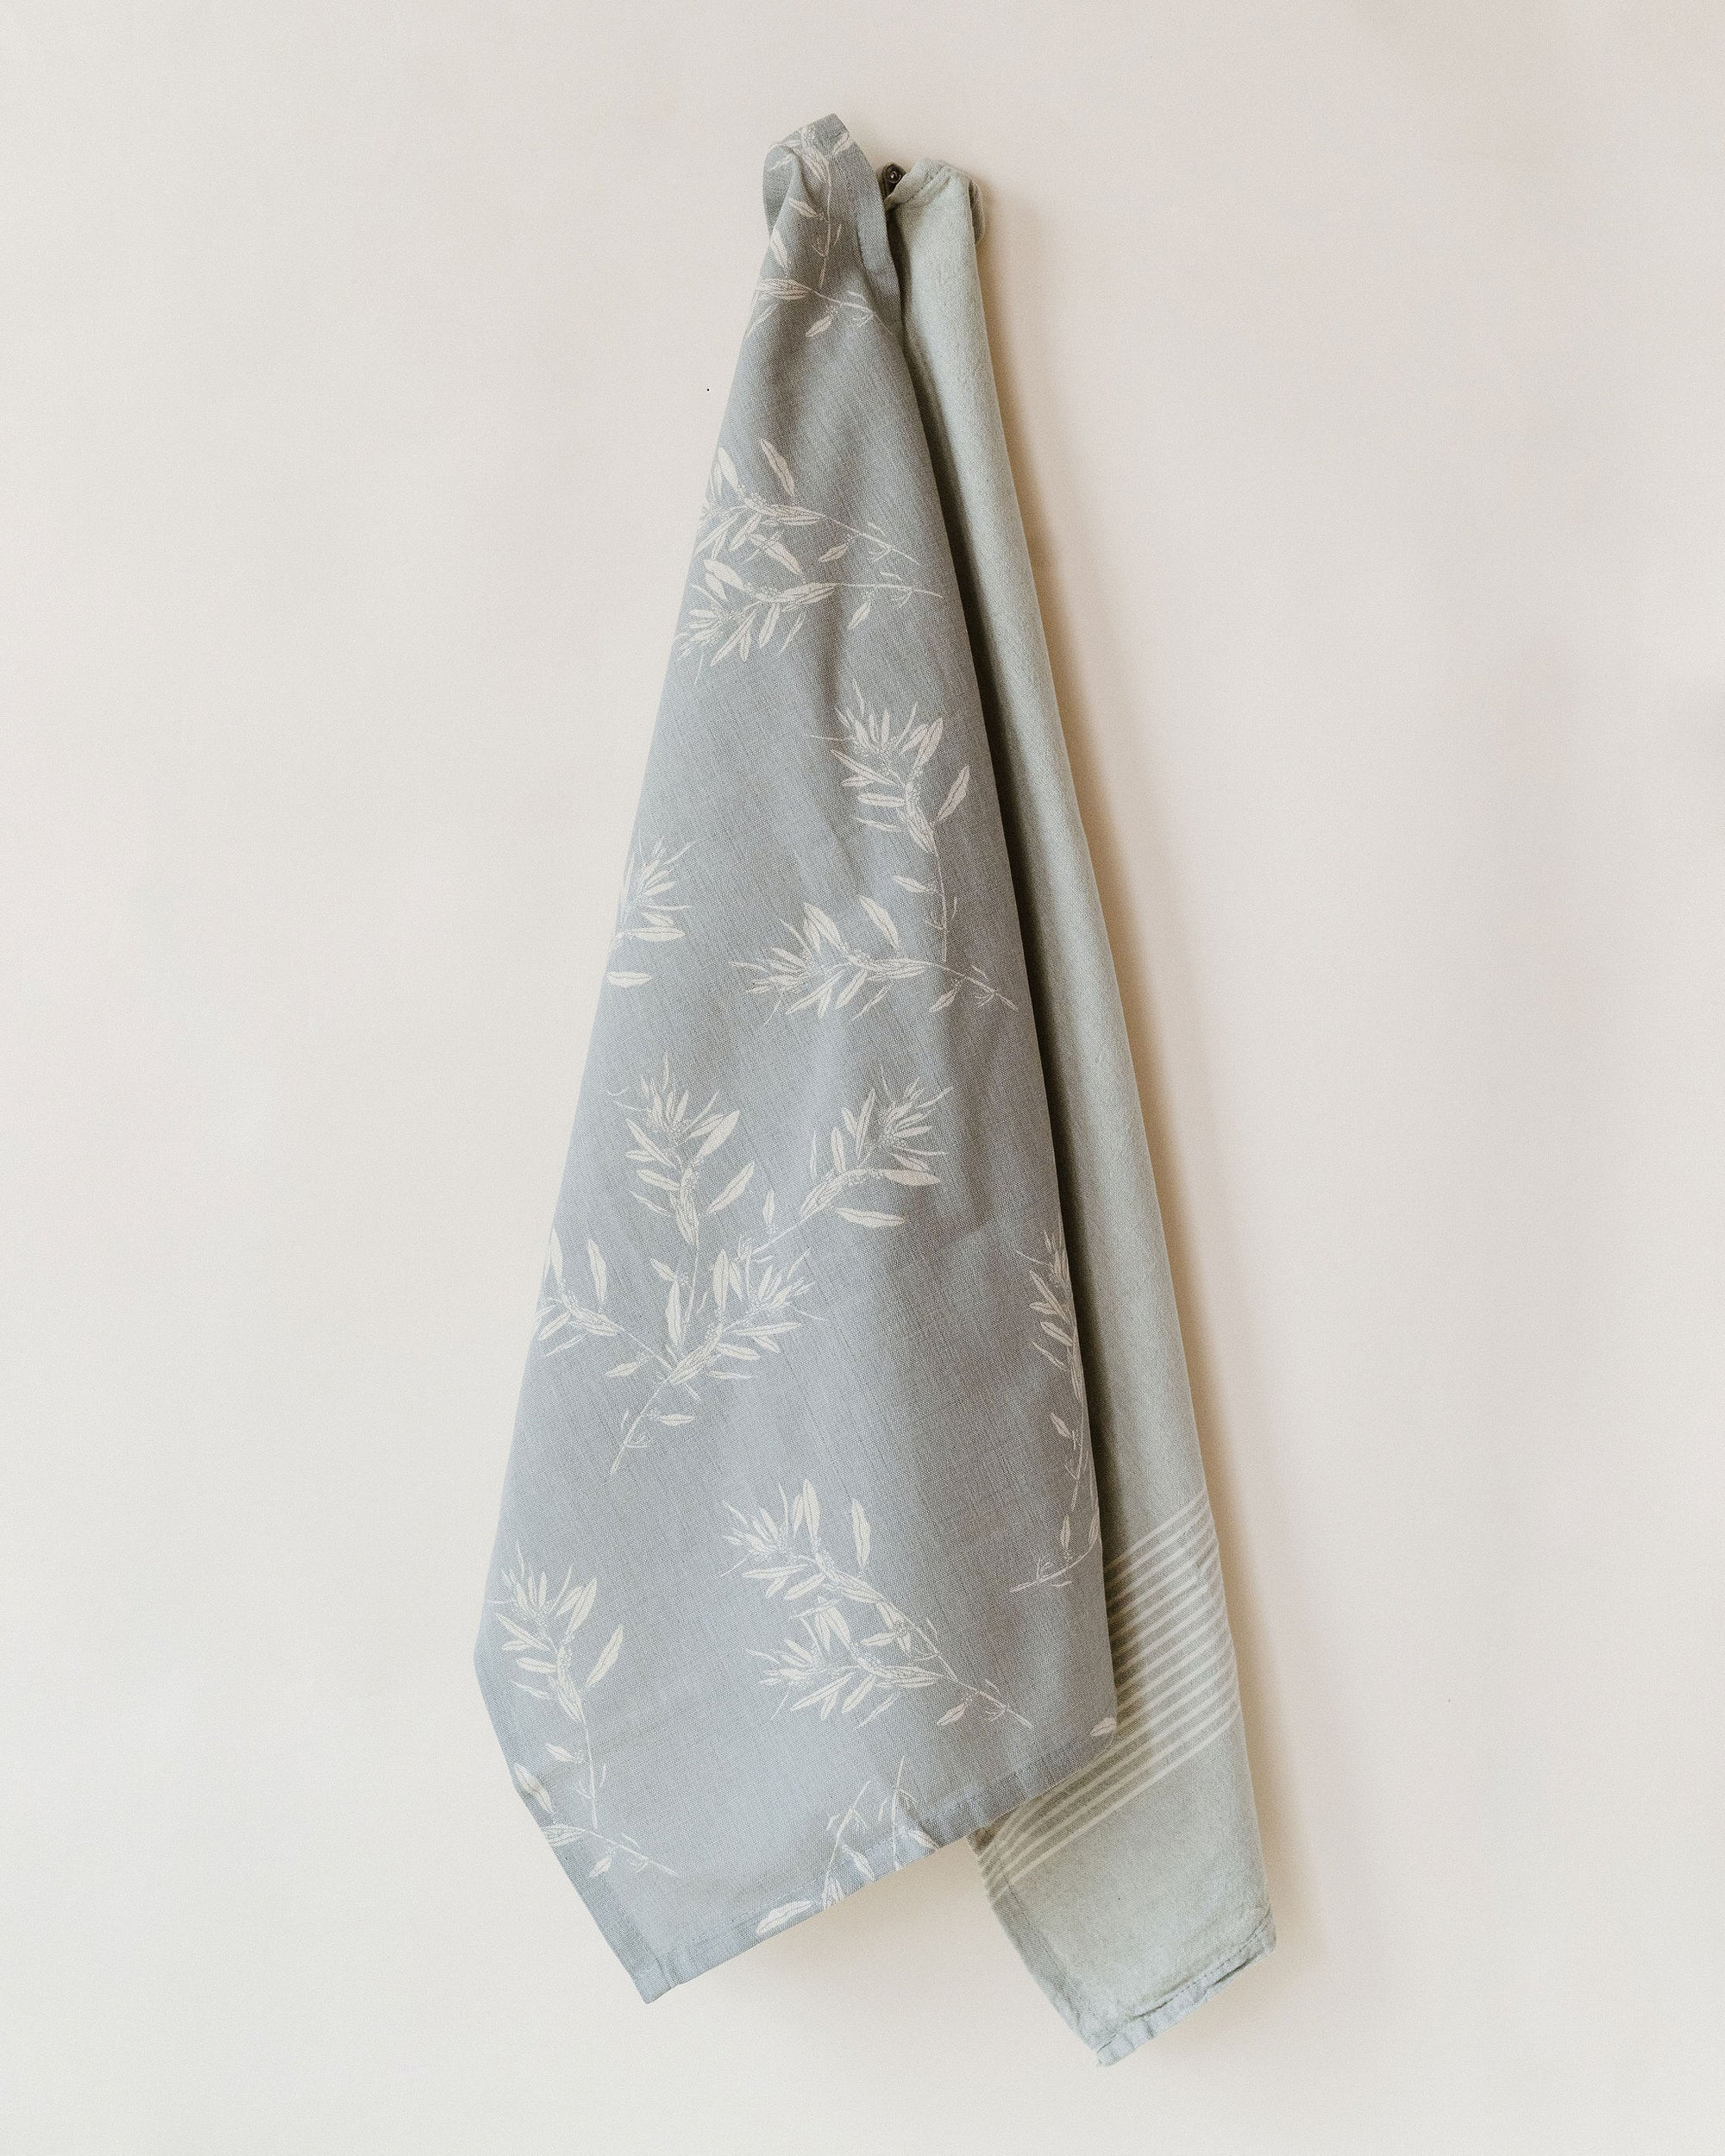 Olive Grove Towel